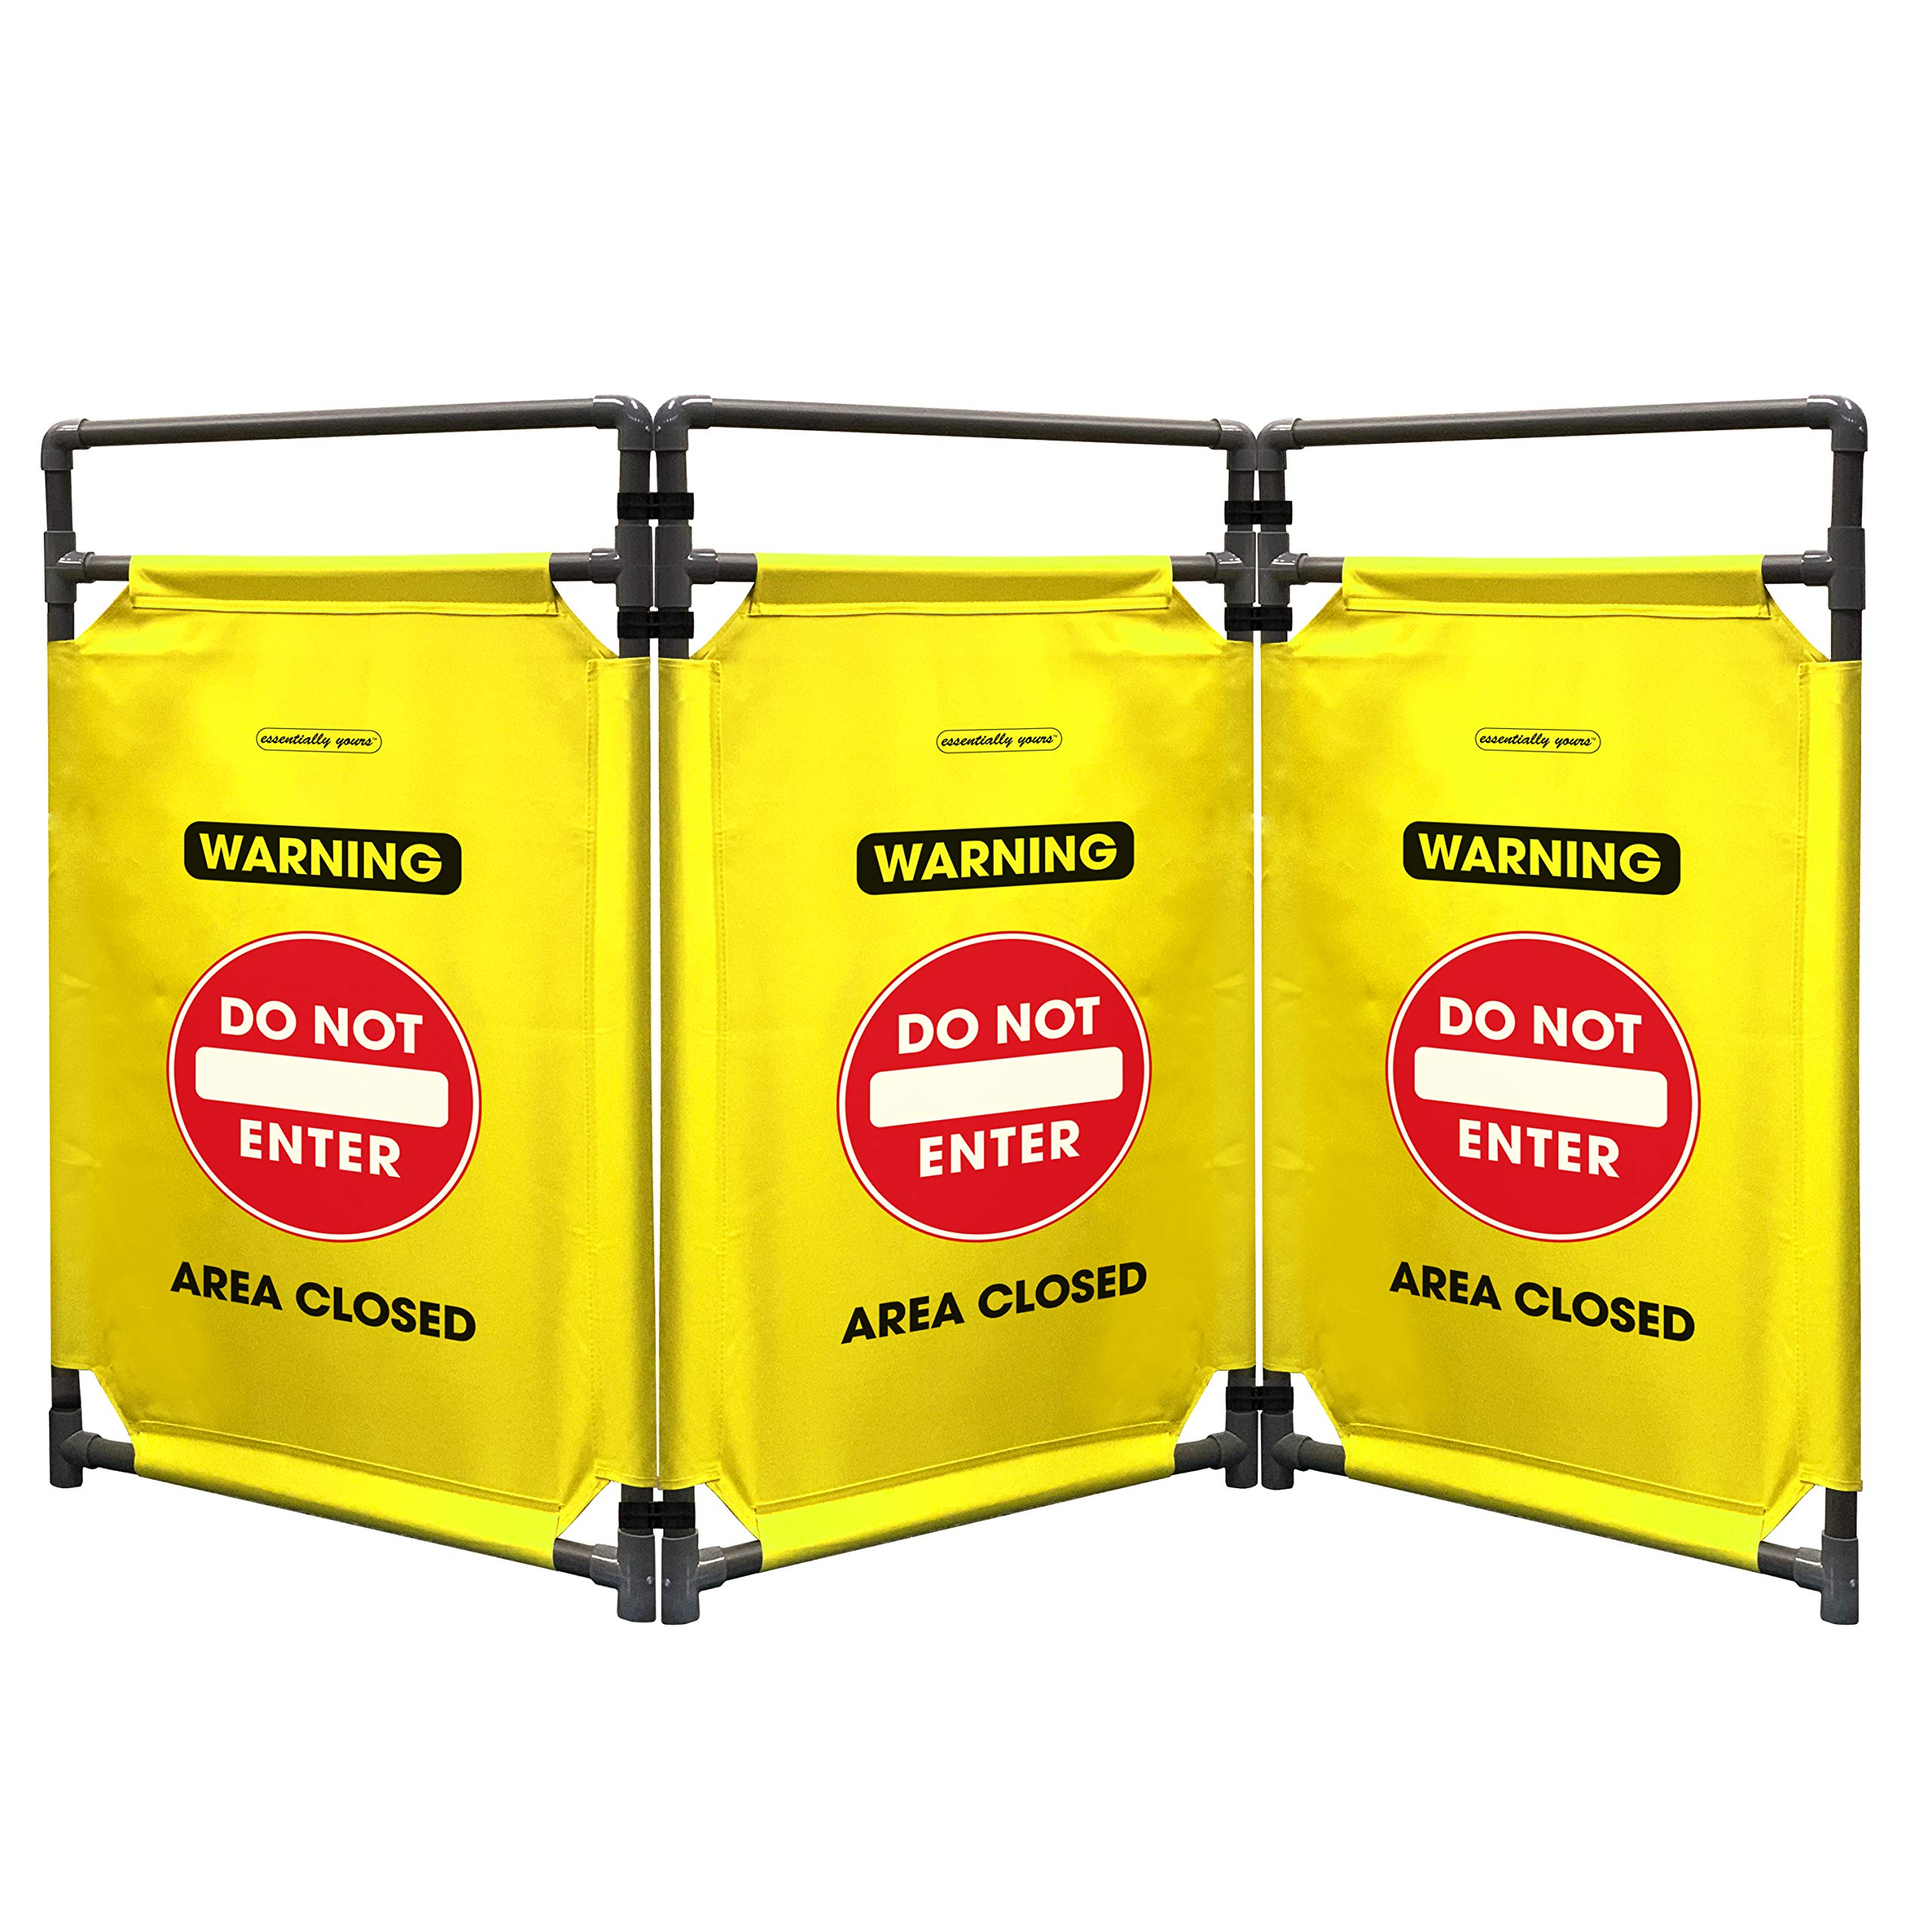 Safety Barricade, High Visibility 3 Foot Portable Safety Barrier with Heavy Duty PVC Frame, Foldable, Lightweight, Durable, Hi-Visibility-''DO NOT Enter'' by Essentially Yours